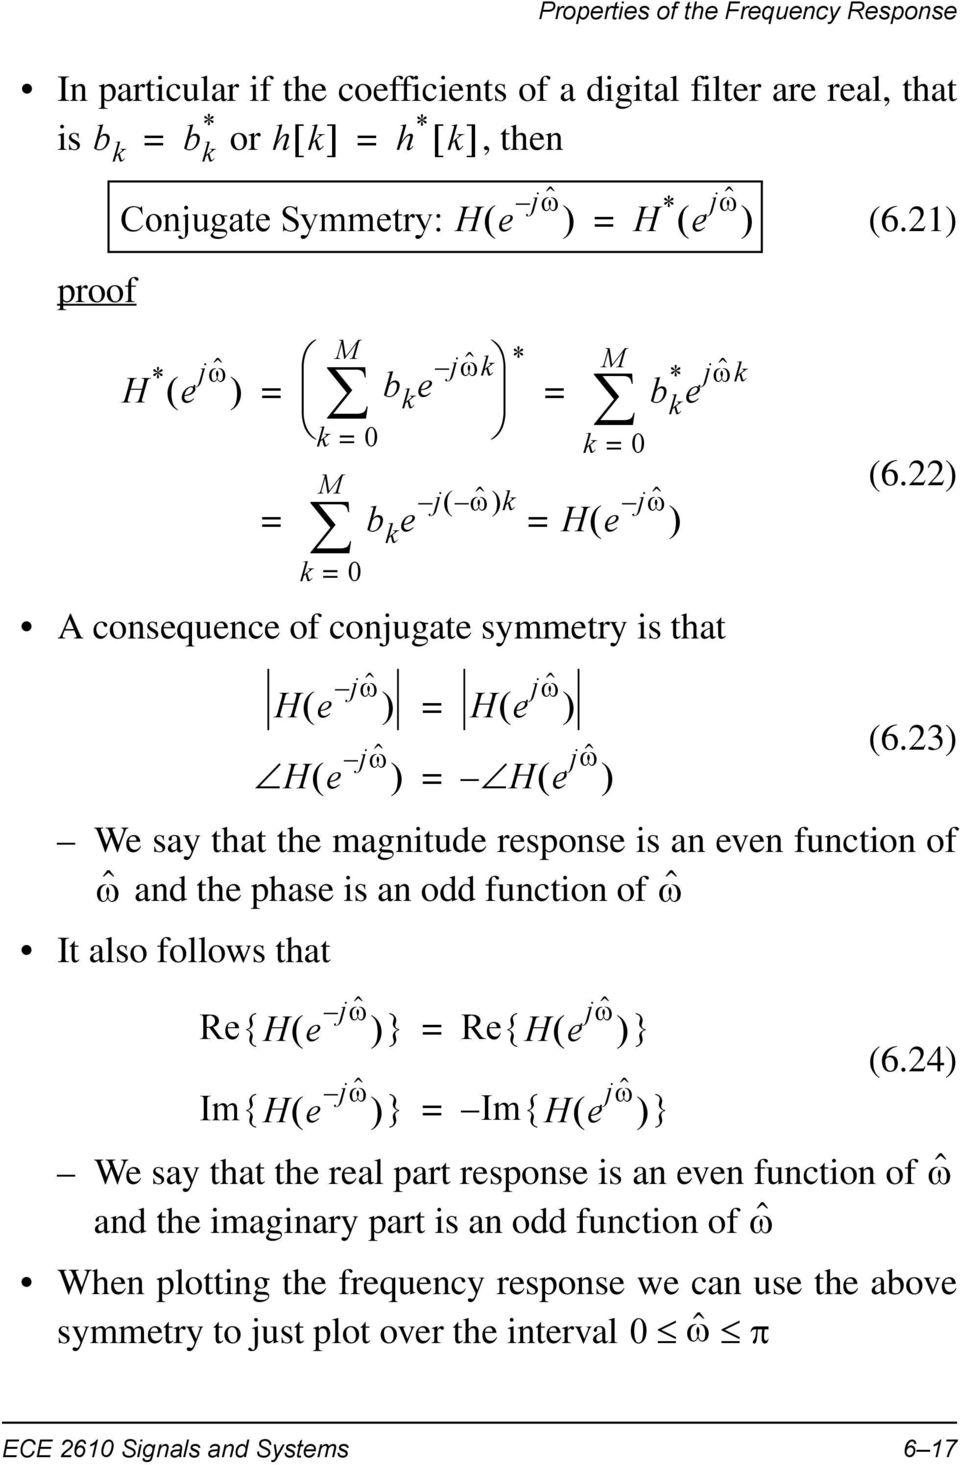 ) (6.3) We say that the magnitude response is an even function of ˆ and the phase is an odd function of ˆ It also follows that M k M k b k e j ˆ k k He jˆ When plotting the